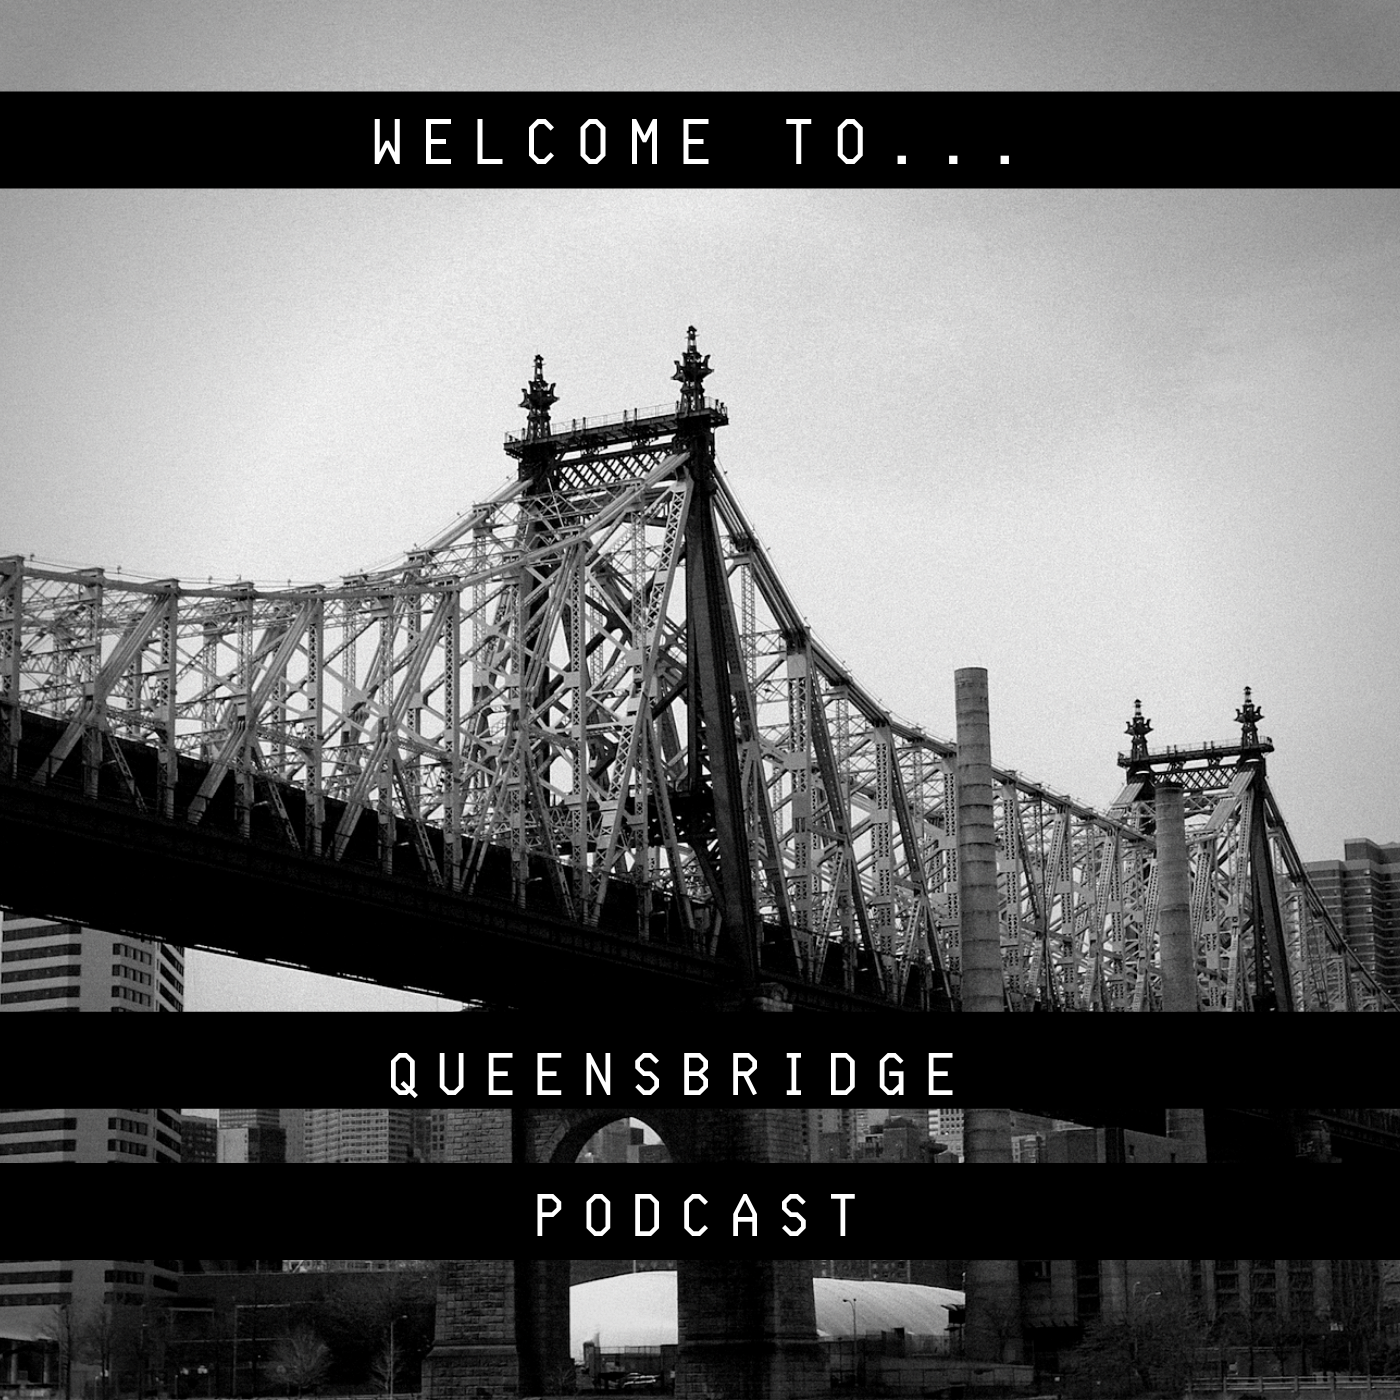 Queensbridge,where queenslink, connect & bridge the gap. Inspired by Nas (the epitome of hiphop and poetry) and Queensbridge houses. The largest public housing project in the United States, became a mecca for hiphop and culture.   Mixcloud / IG